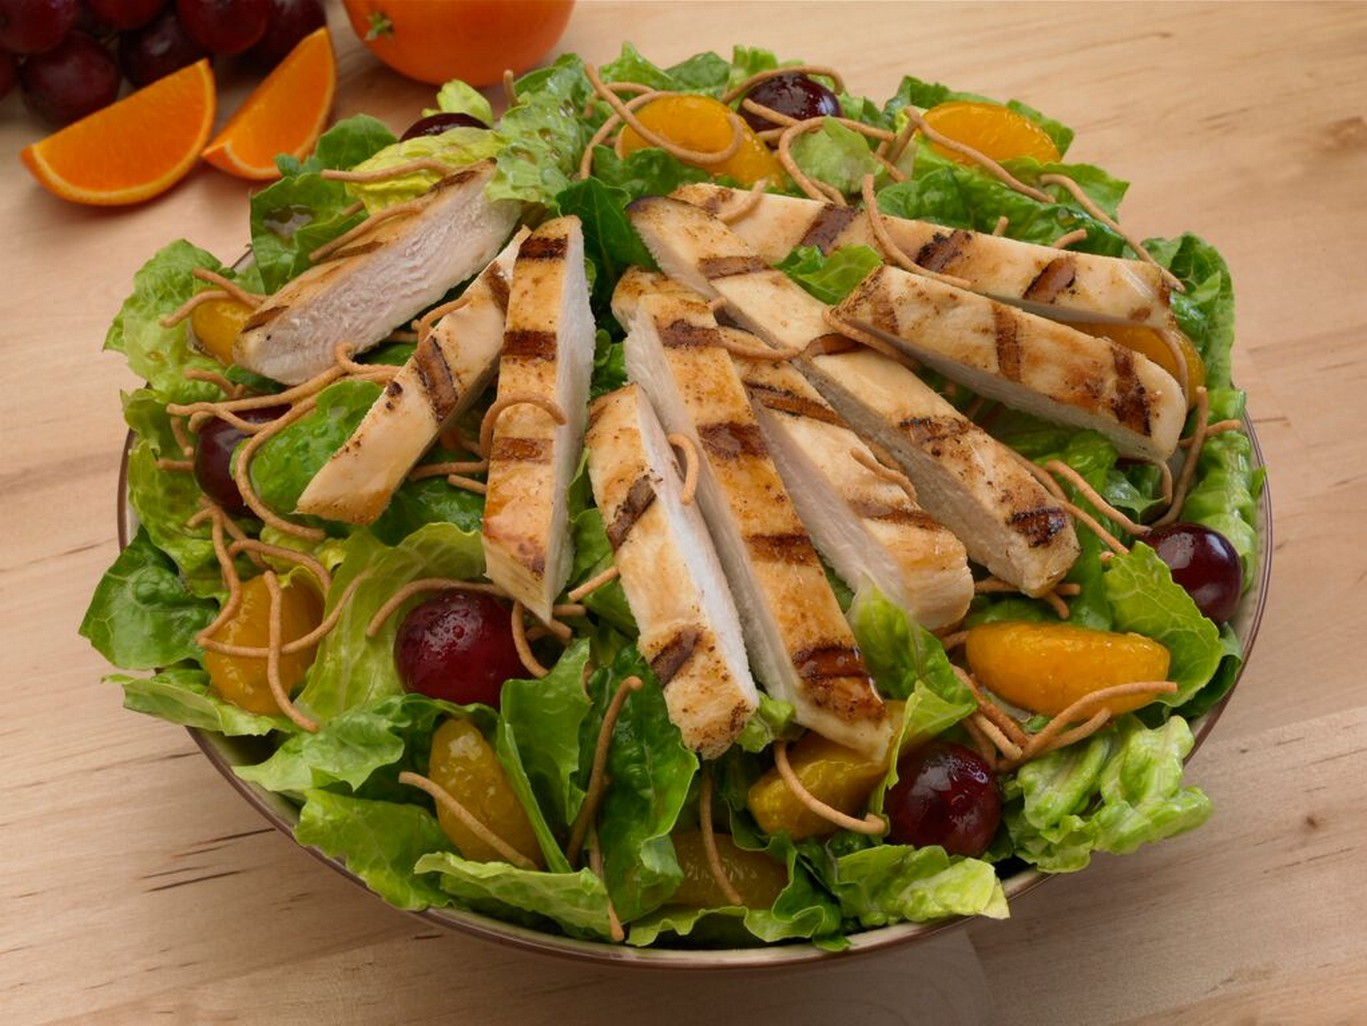 Golden Corral - Chicken Salad